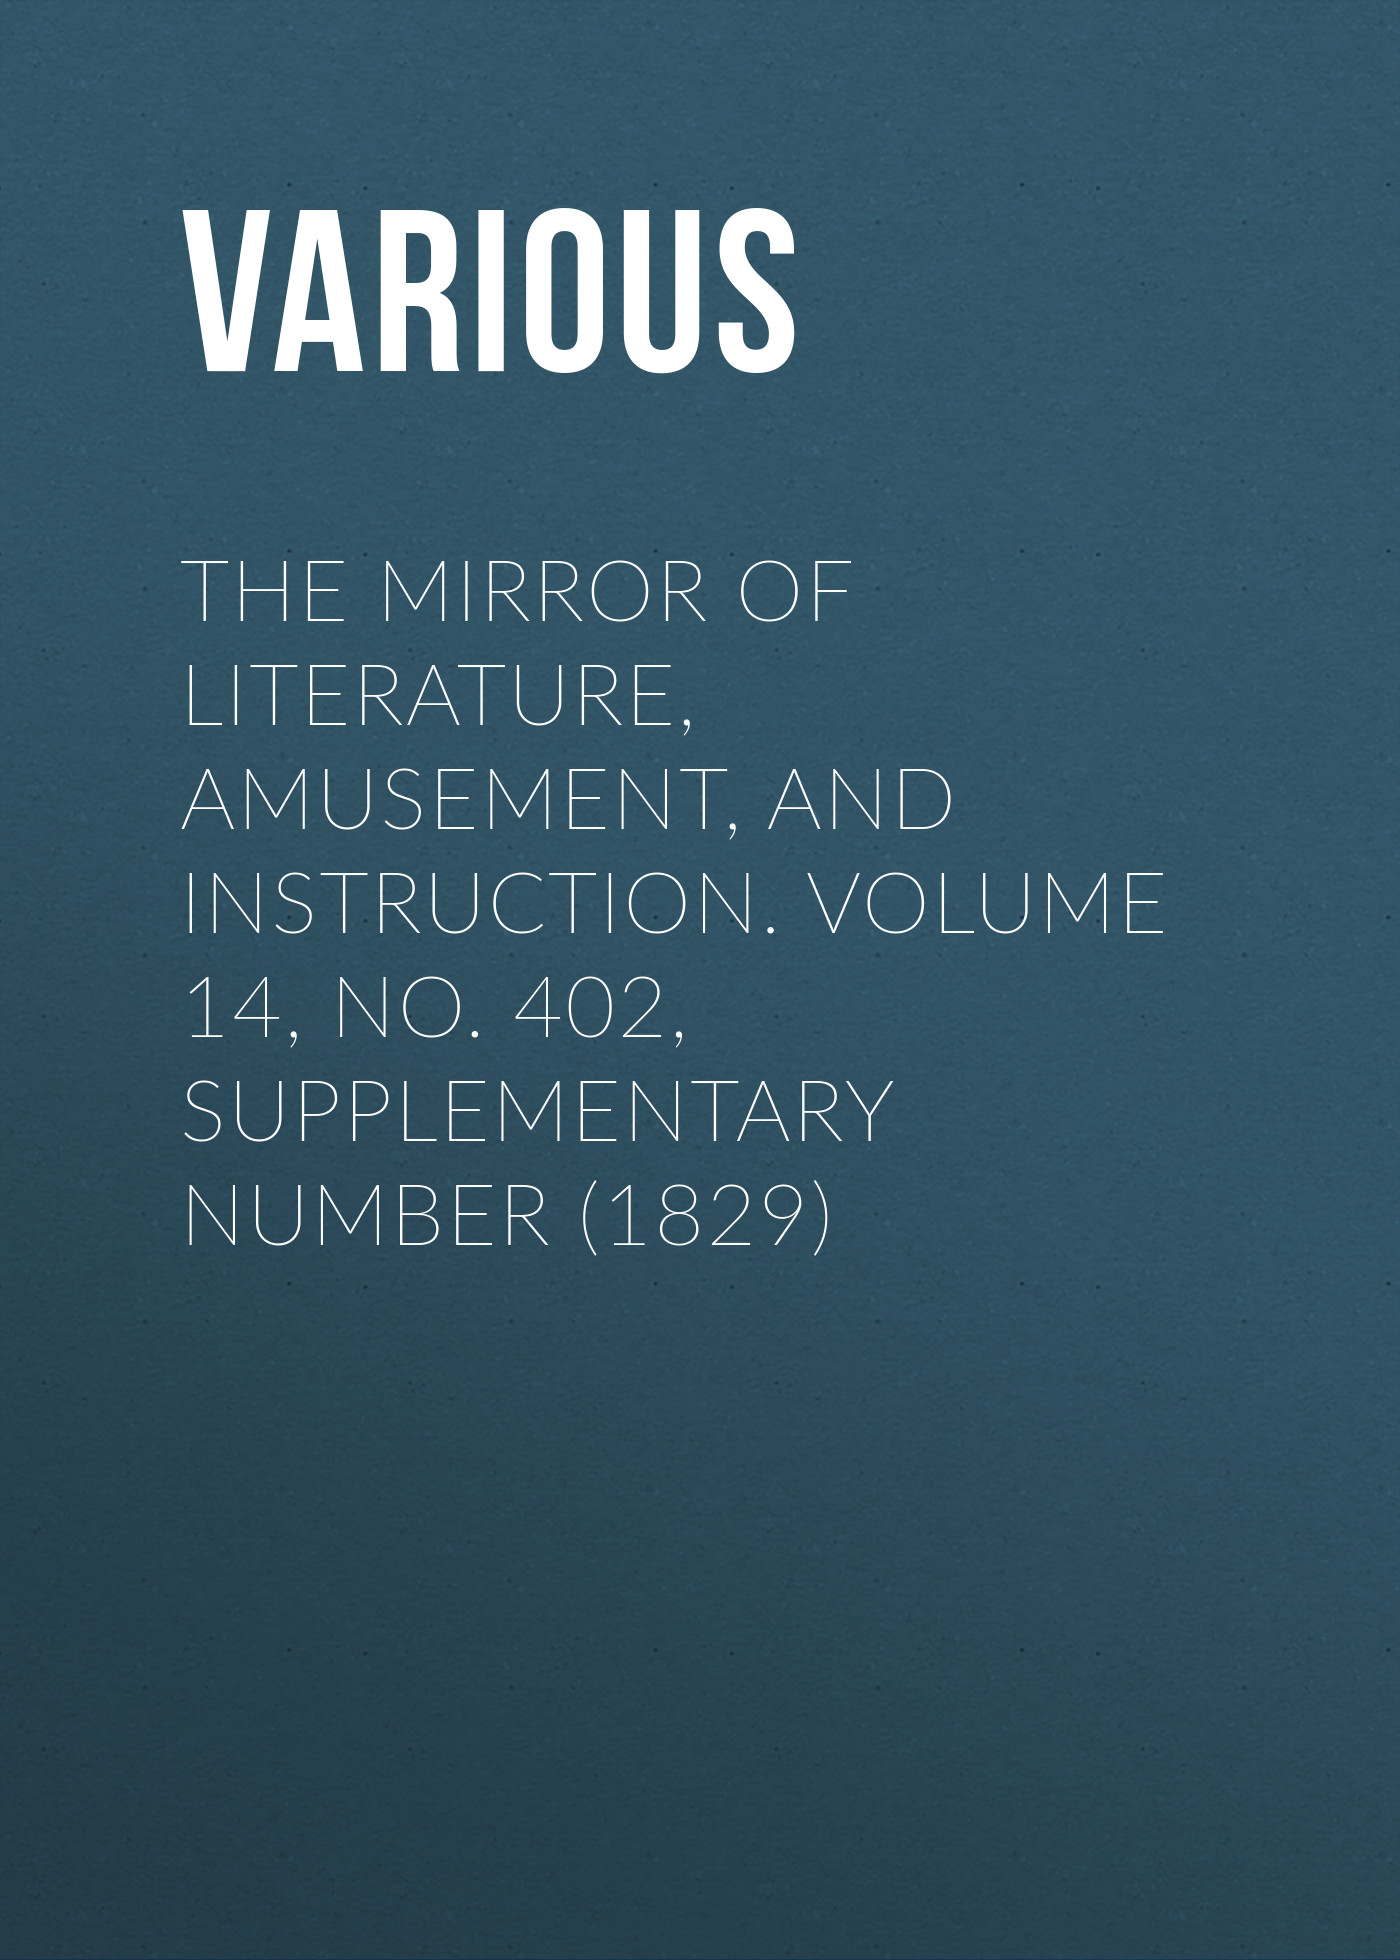 The Mirror of Literature, Amusement, and Instruction. Volume 14, No. 402, Supplementary Number (1829)